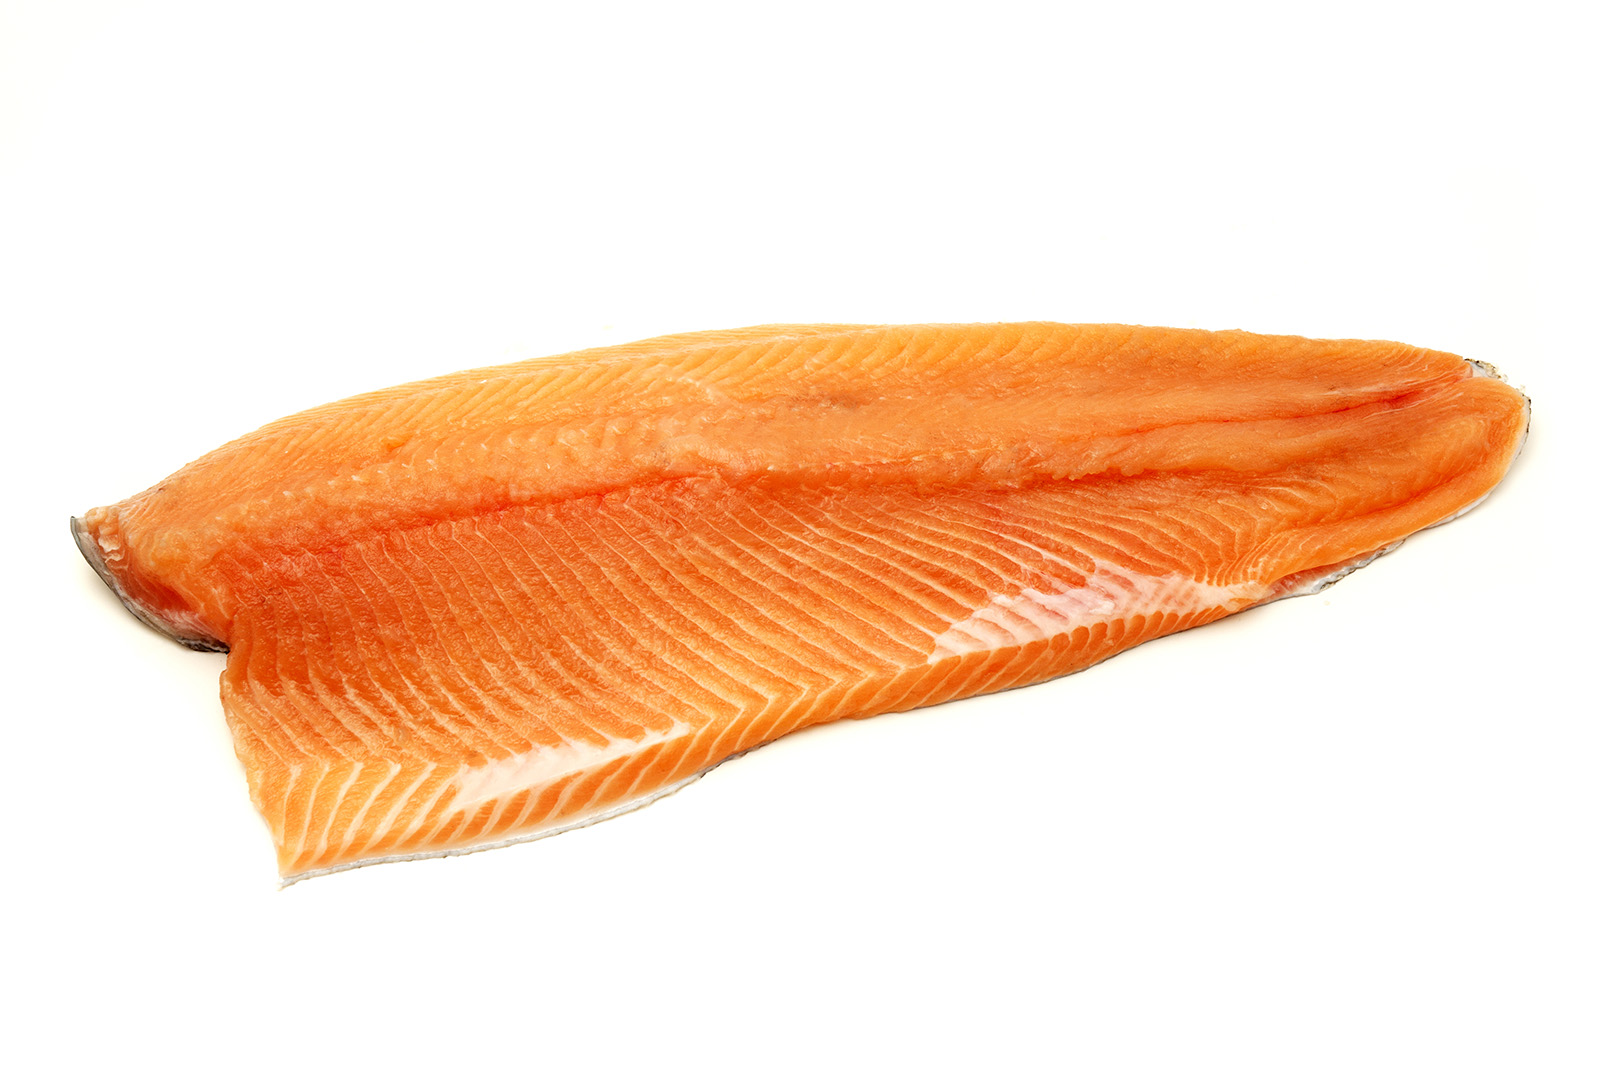 RAINBOW TROUT FILLETS Image